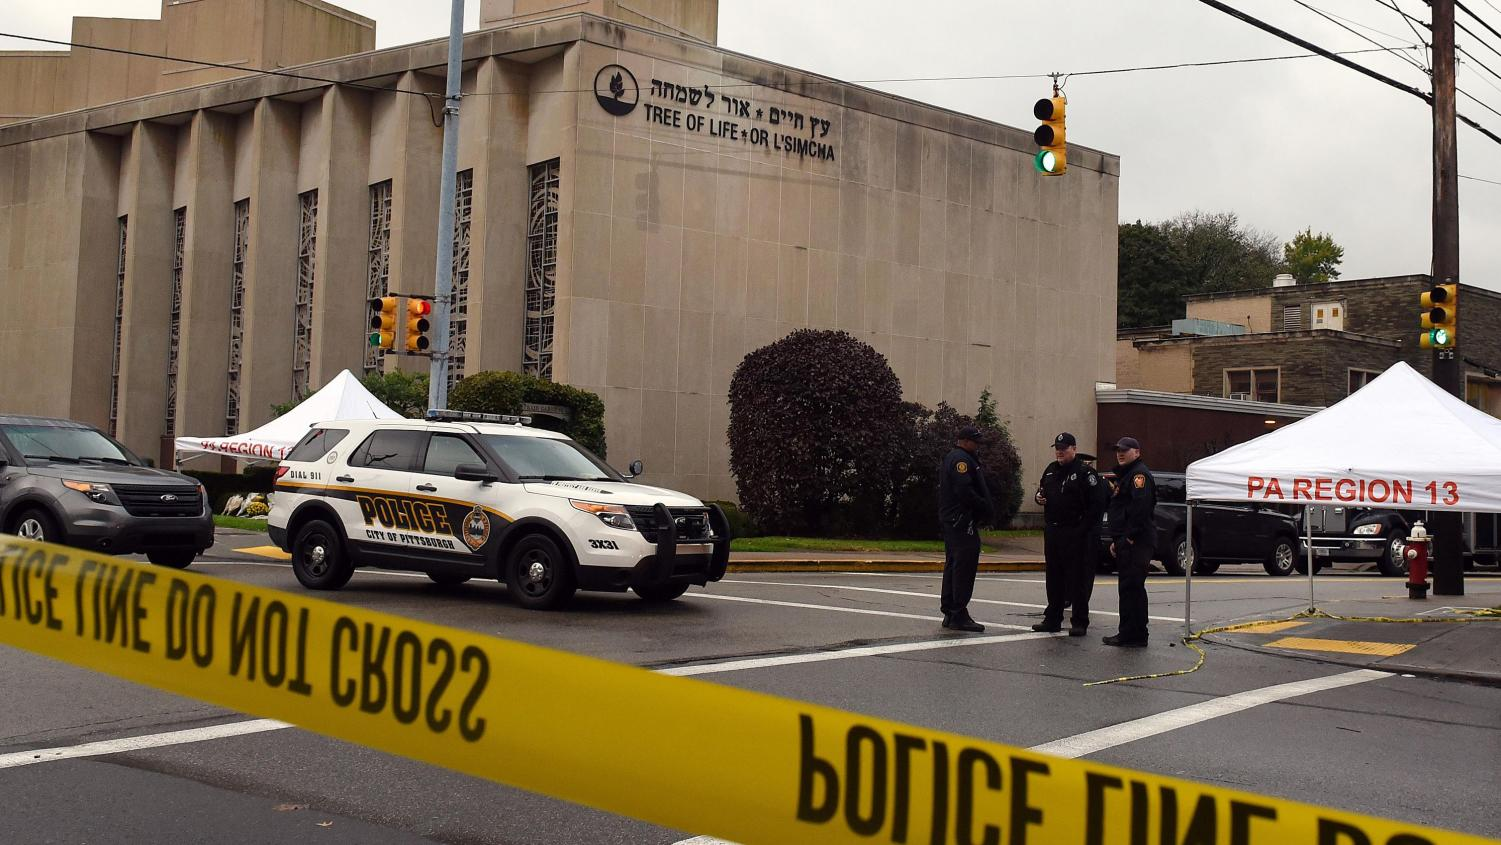 Tree of Life synagogue. Credit: https://www.usatoday.com/story/tech/nation-now/2018/10/29/gab-goes-offline-pittsburgh-synagogue-shooting/1804582002/